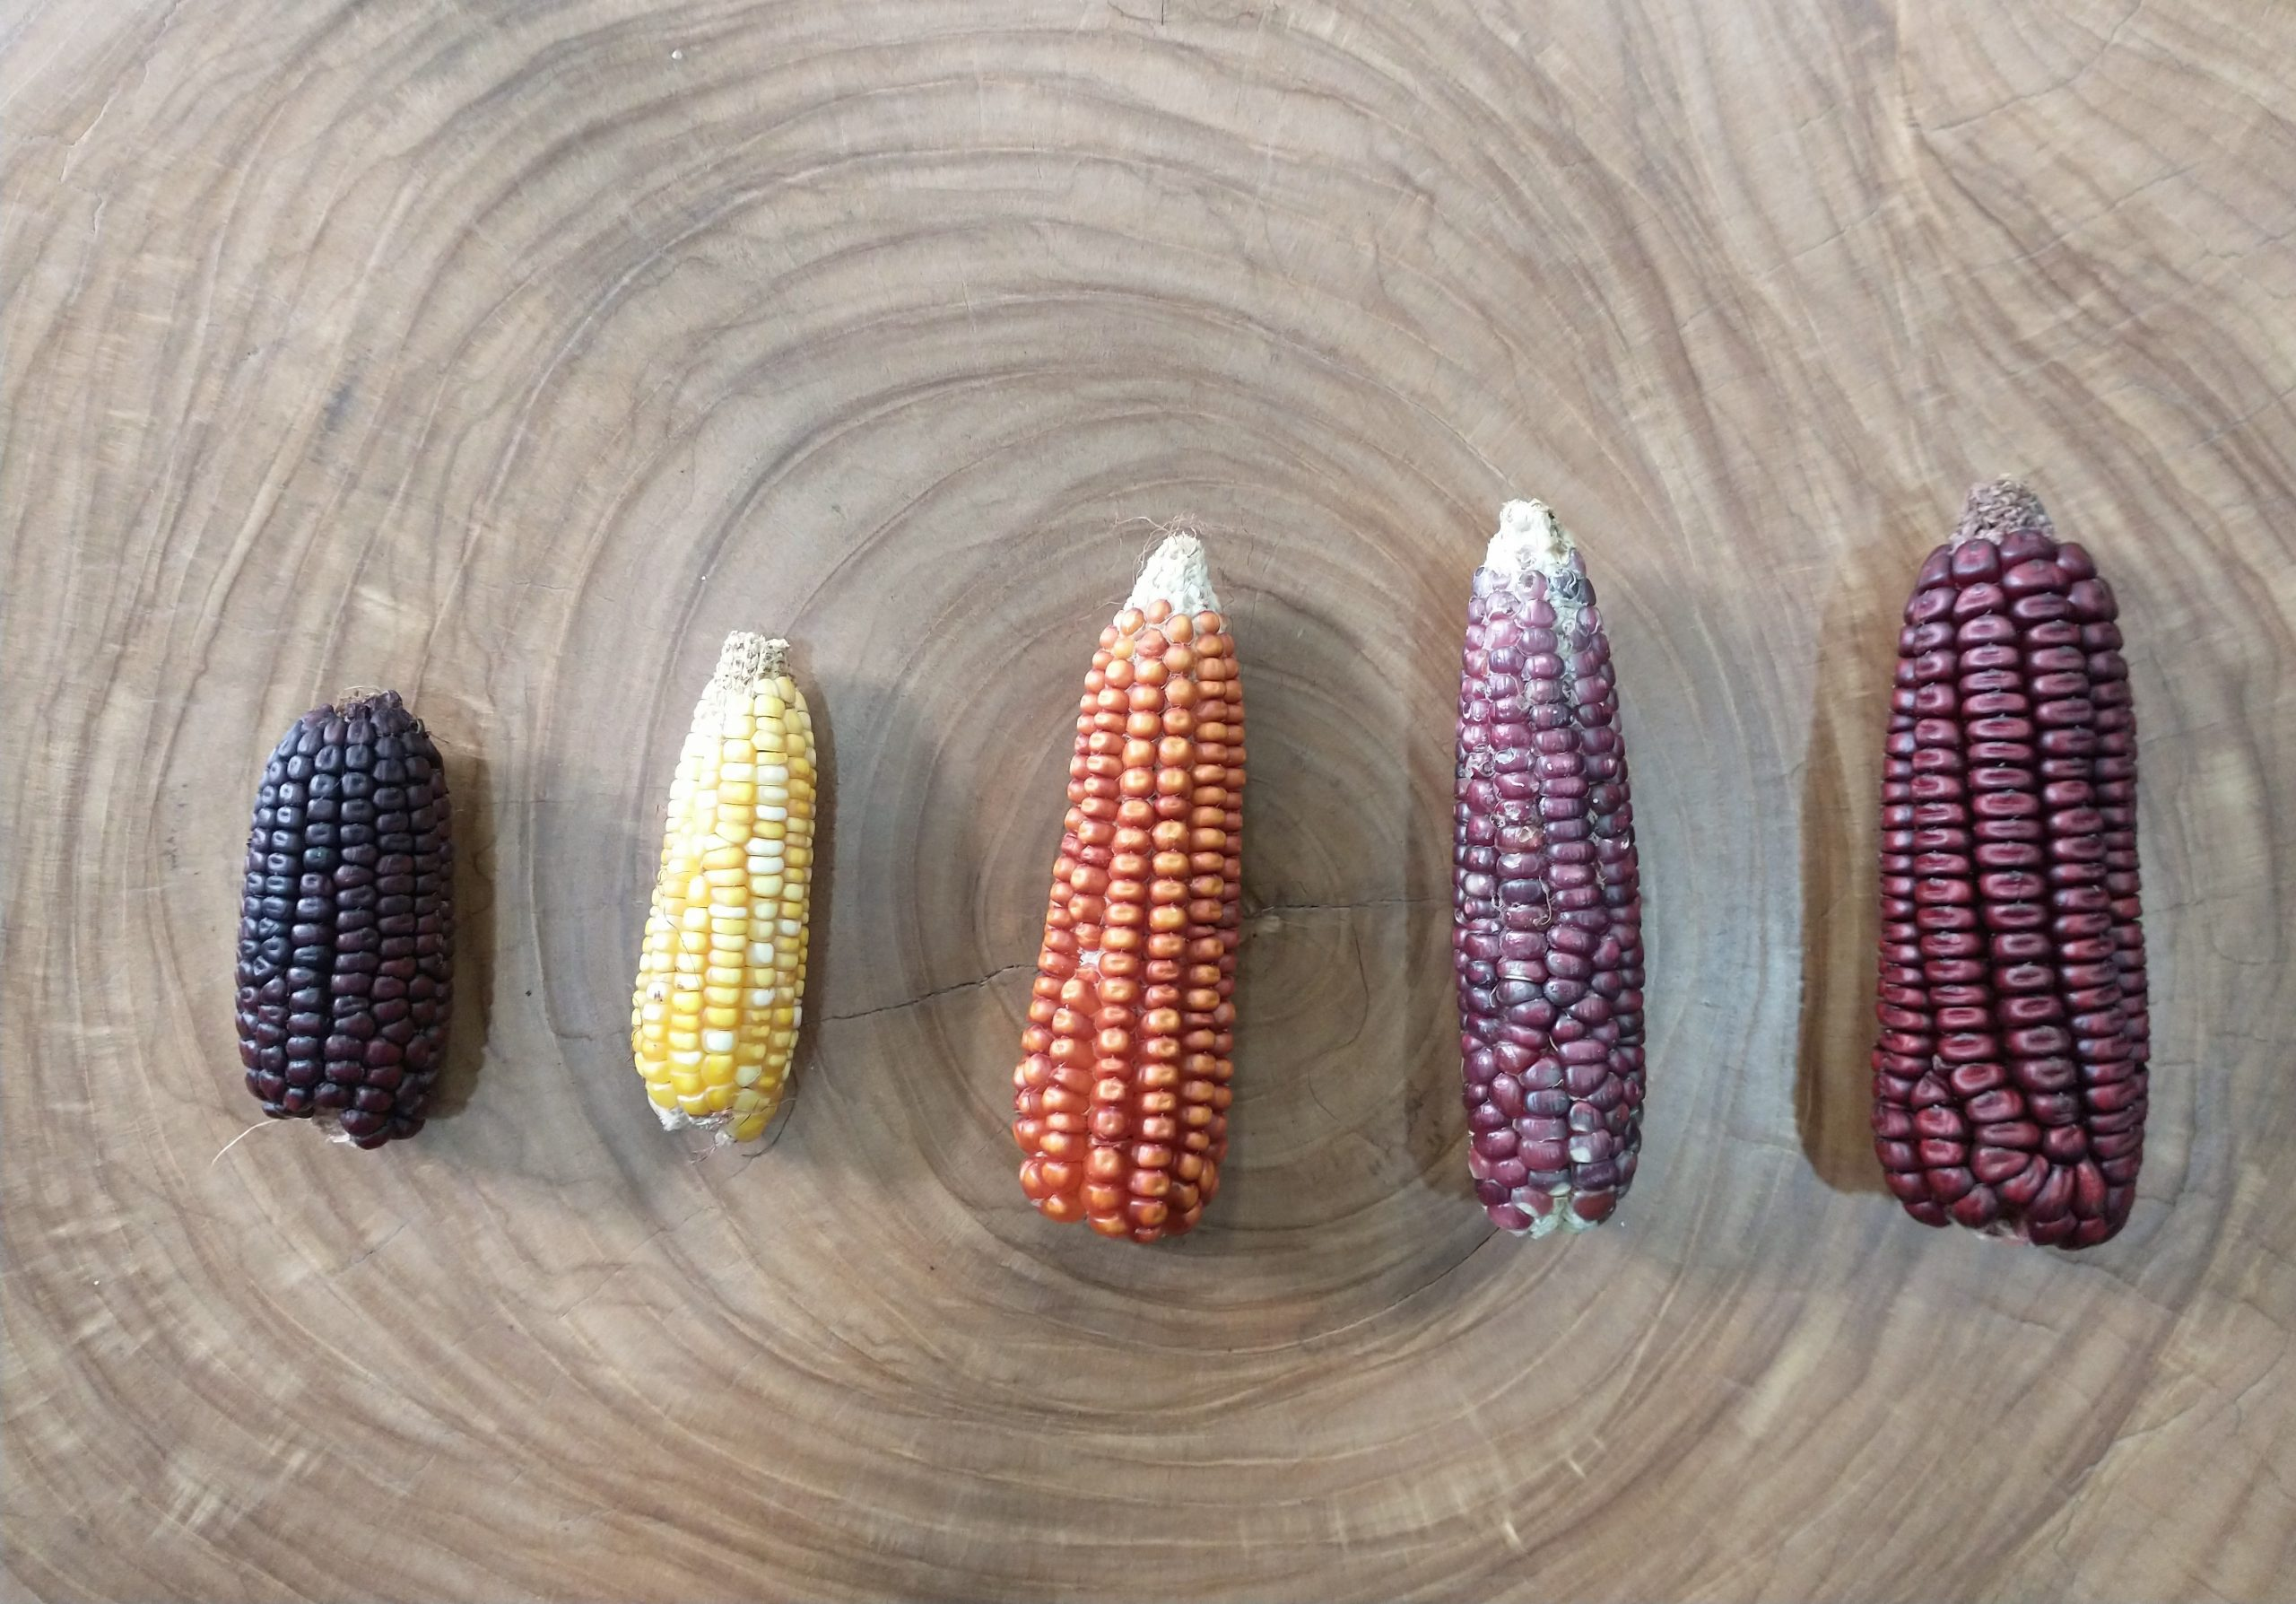 5 varieties of Gallito (little rooster) maize